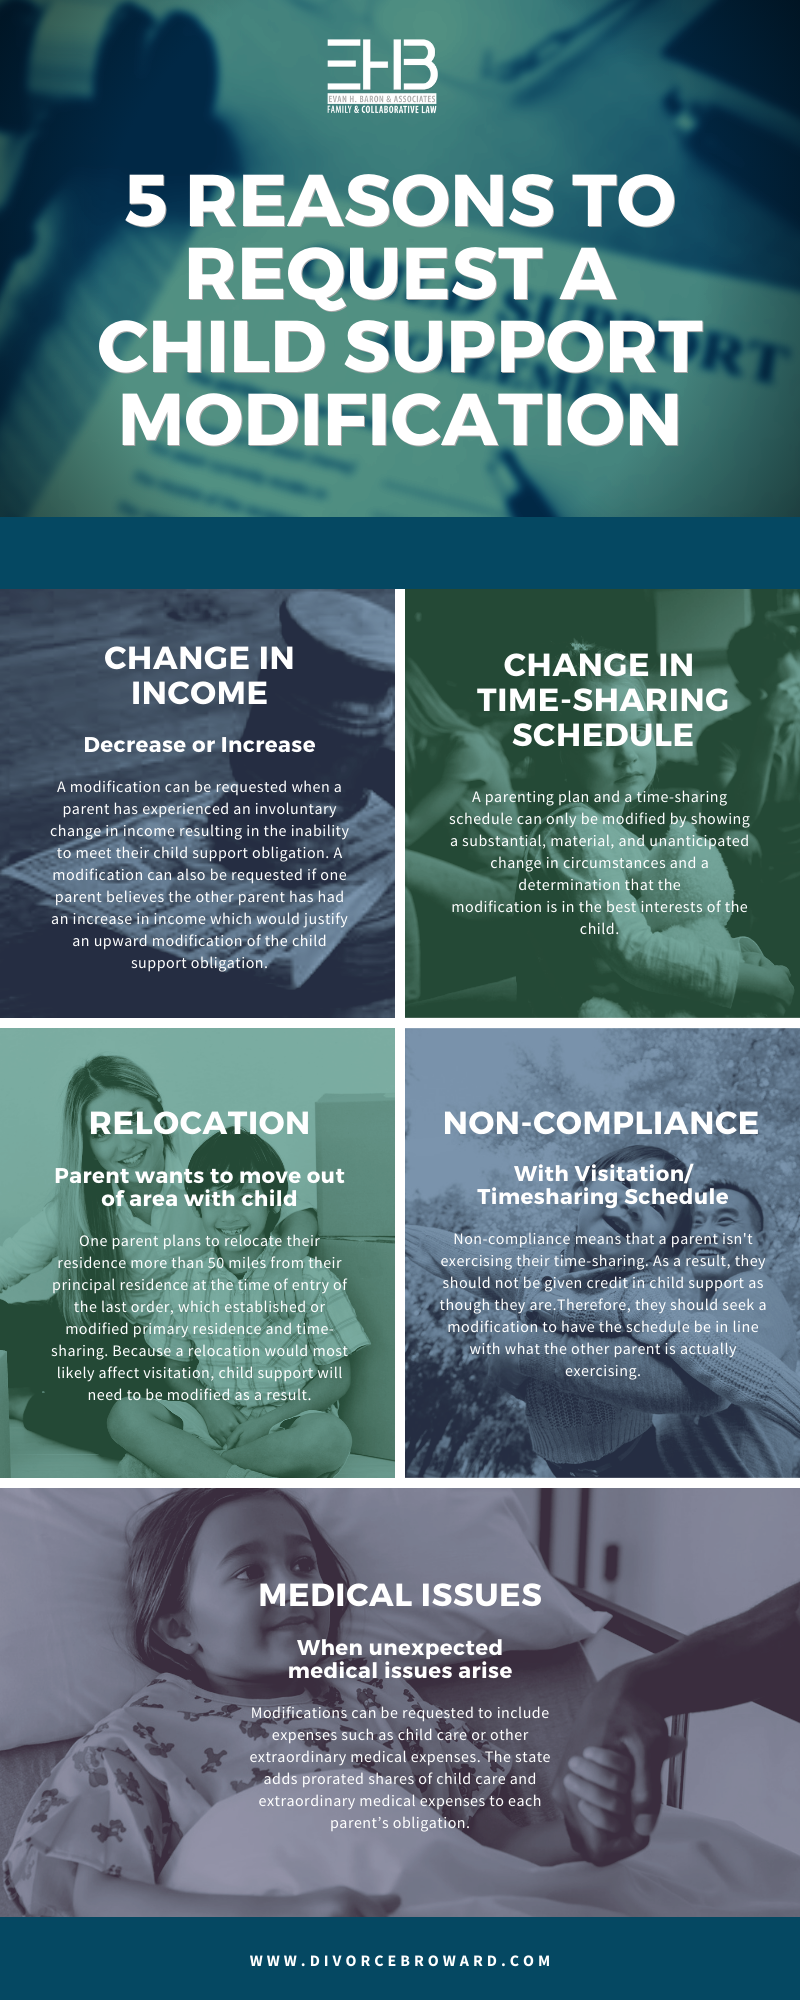 5 Reasons to Request a Child Support Modification Infographic